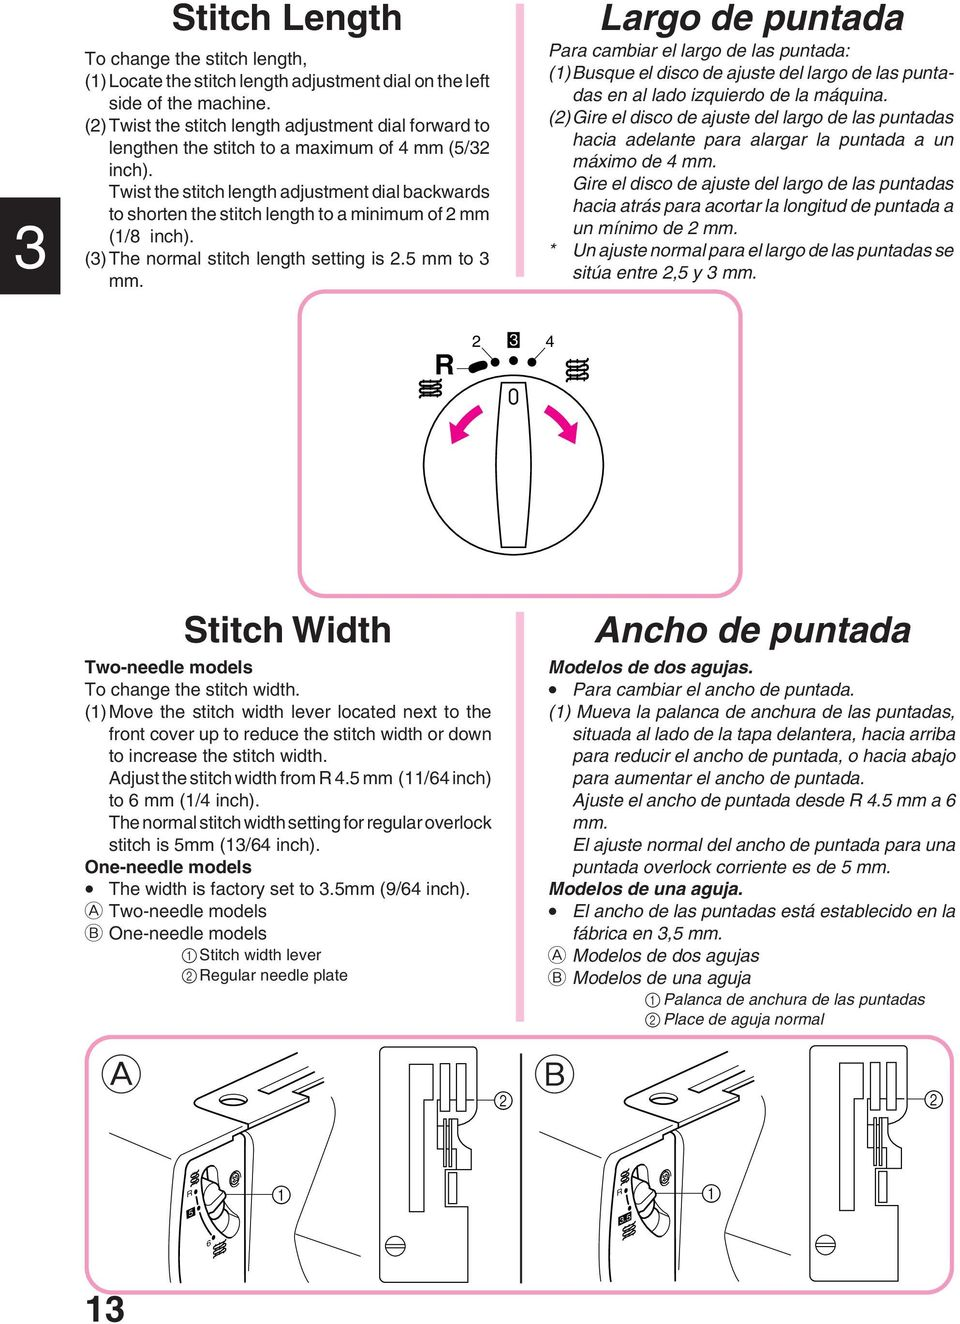 Twist the stitch length adjustment dial backwards to shorten the stitch length to a minimum of mm (1/8 inch). ()The normal stitch length setting is. mm to mm.